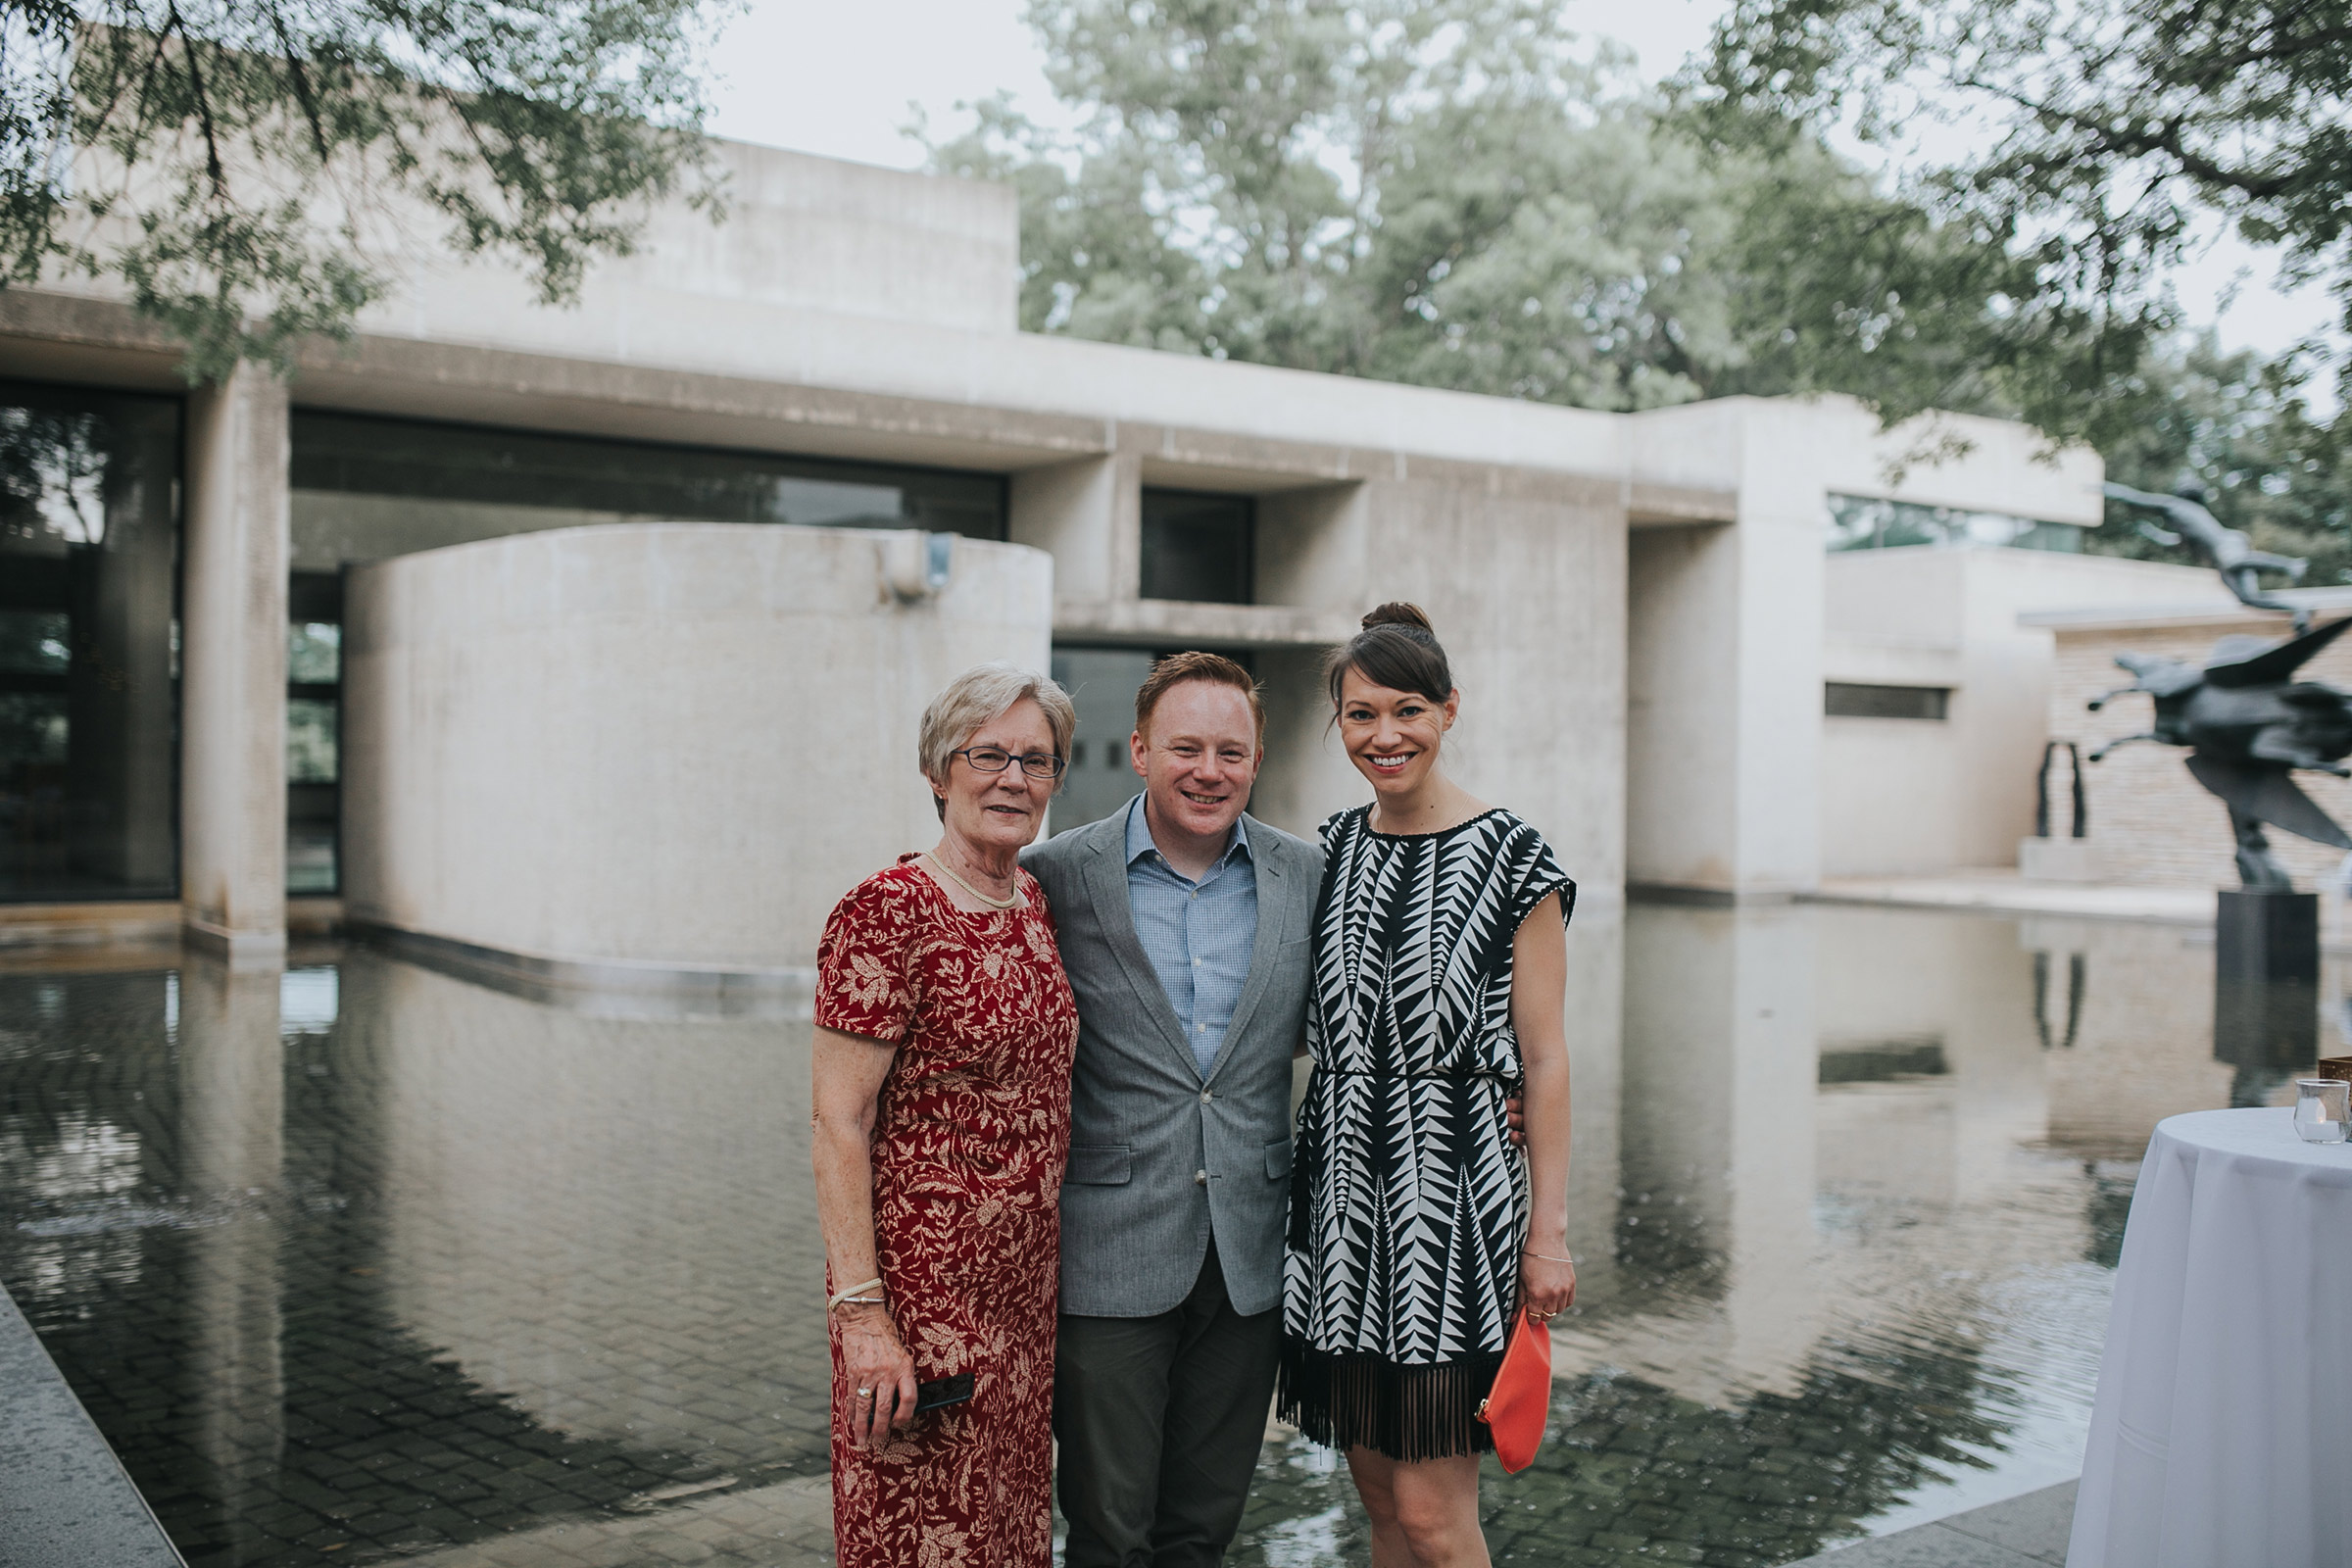 guests-posing-in-front-of-fountain-desmoines-iowa-art-center-raelyn-ramey-photography.jpg